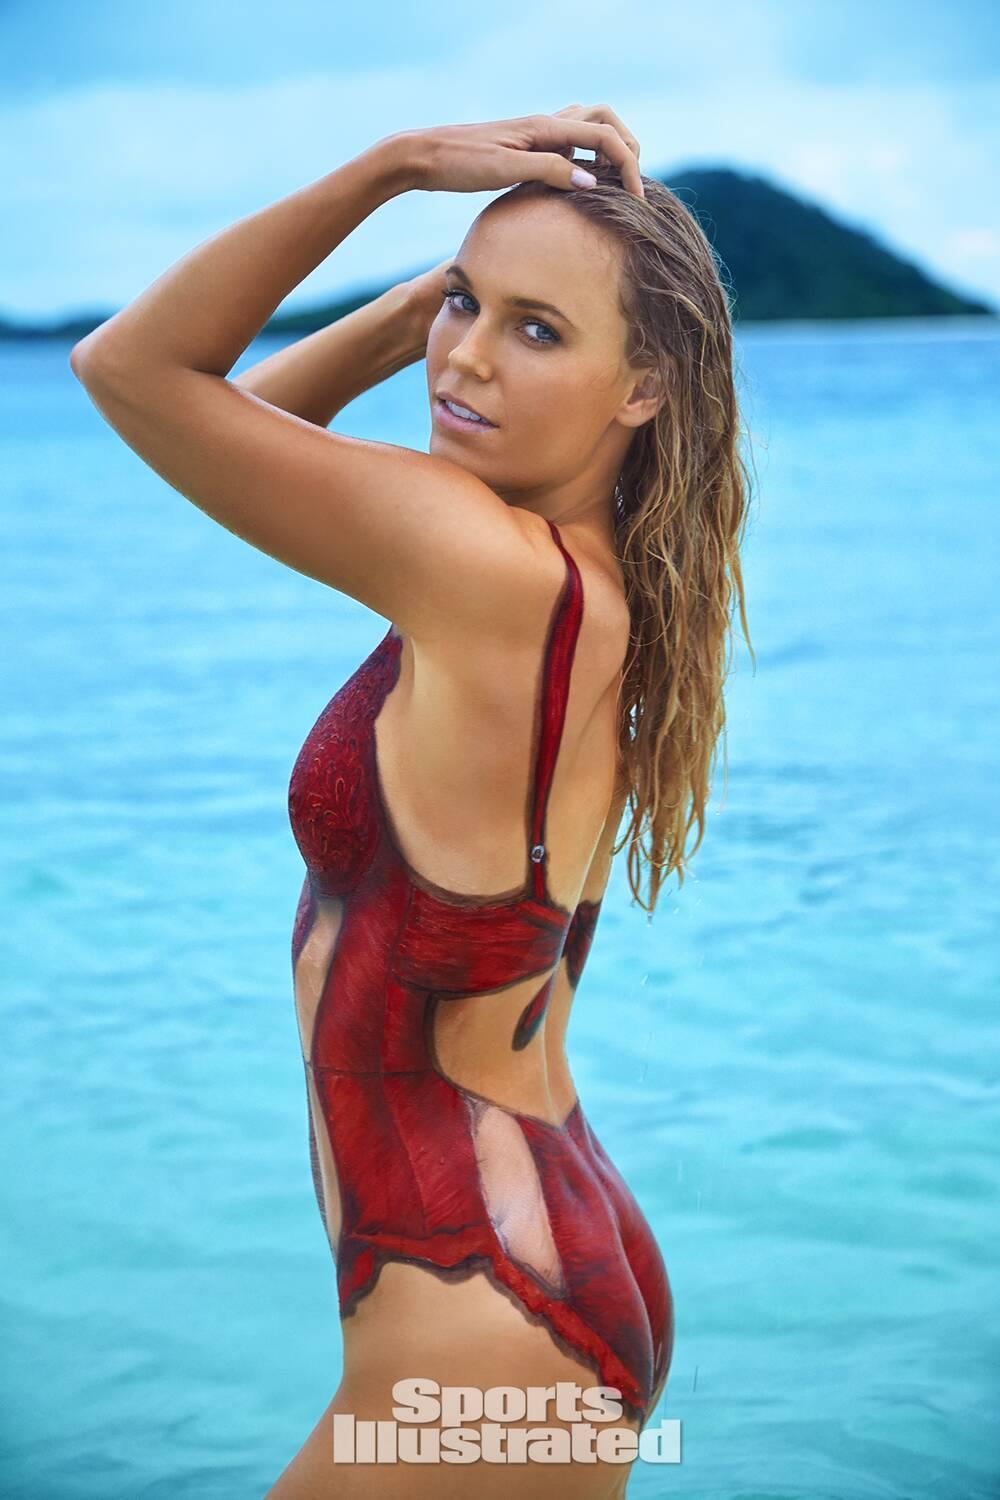 Caroline Wozniacki was photographed by Frederic Pinet in Petit St. Vincent.  Swimsuit inspired by 232d84cdc